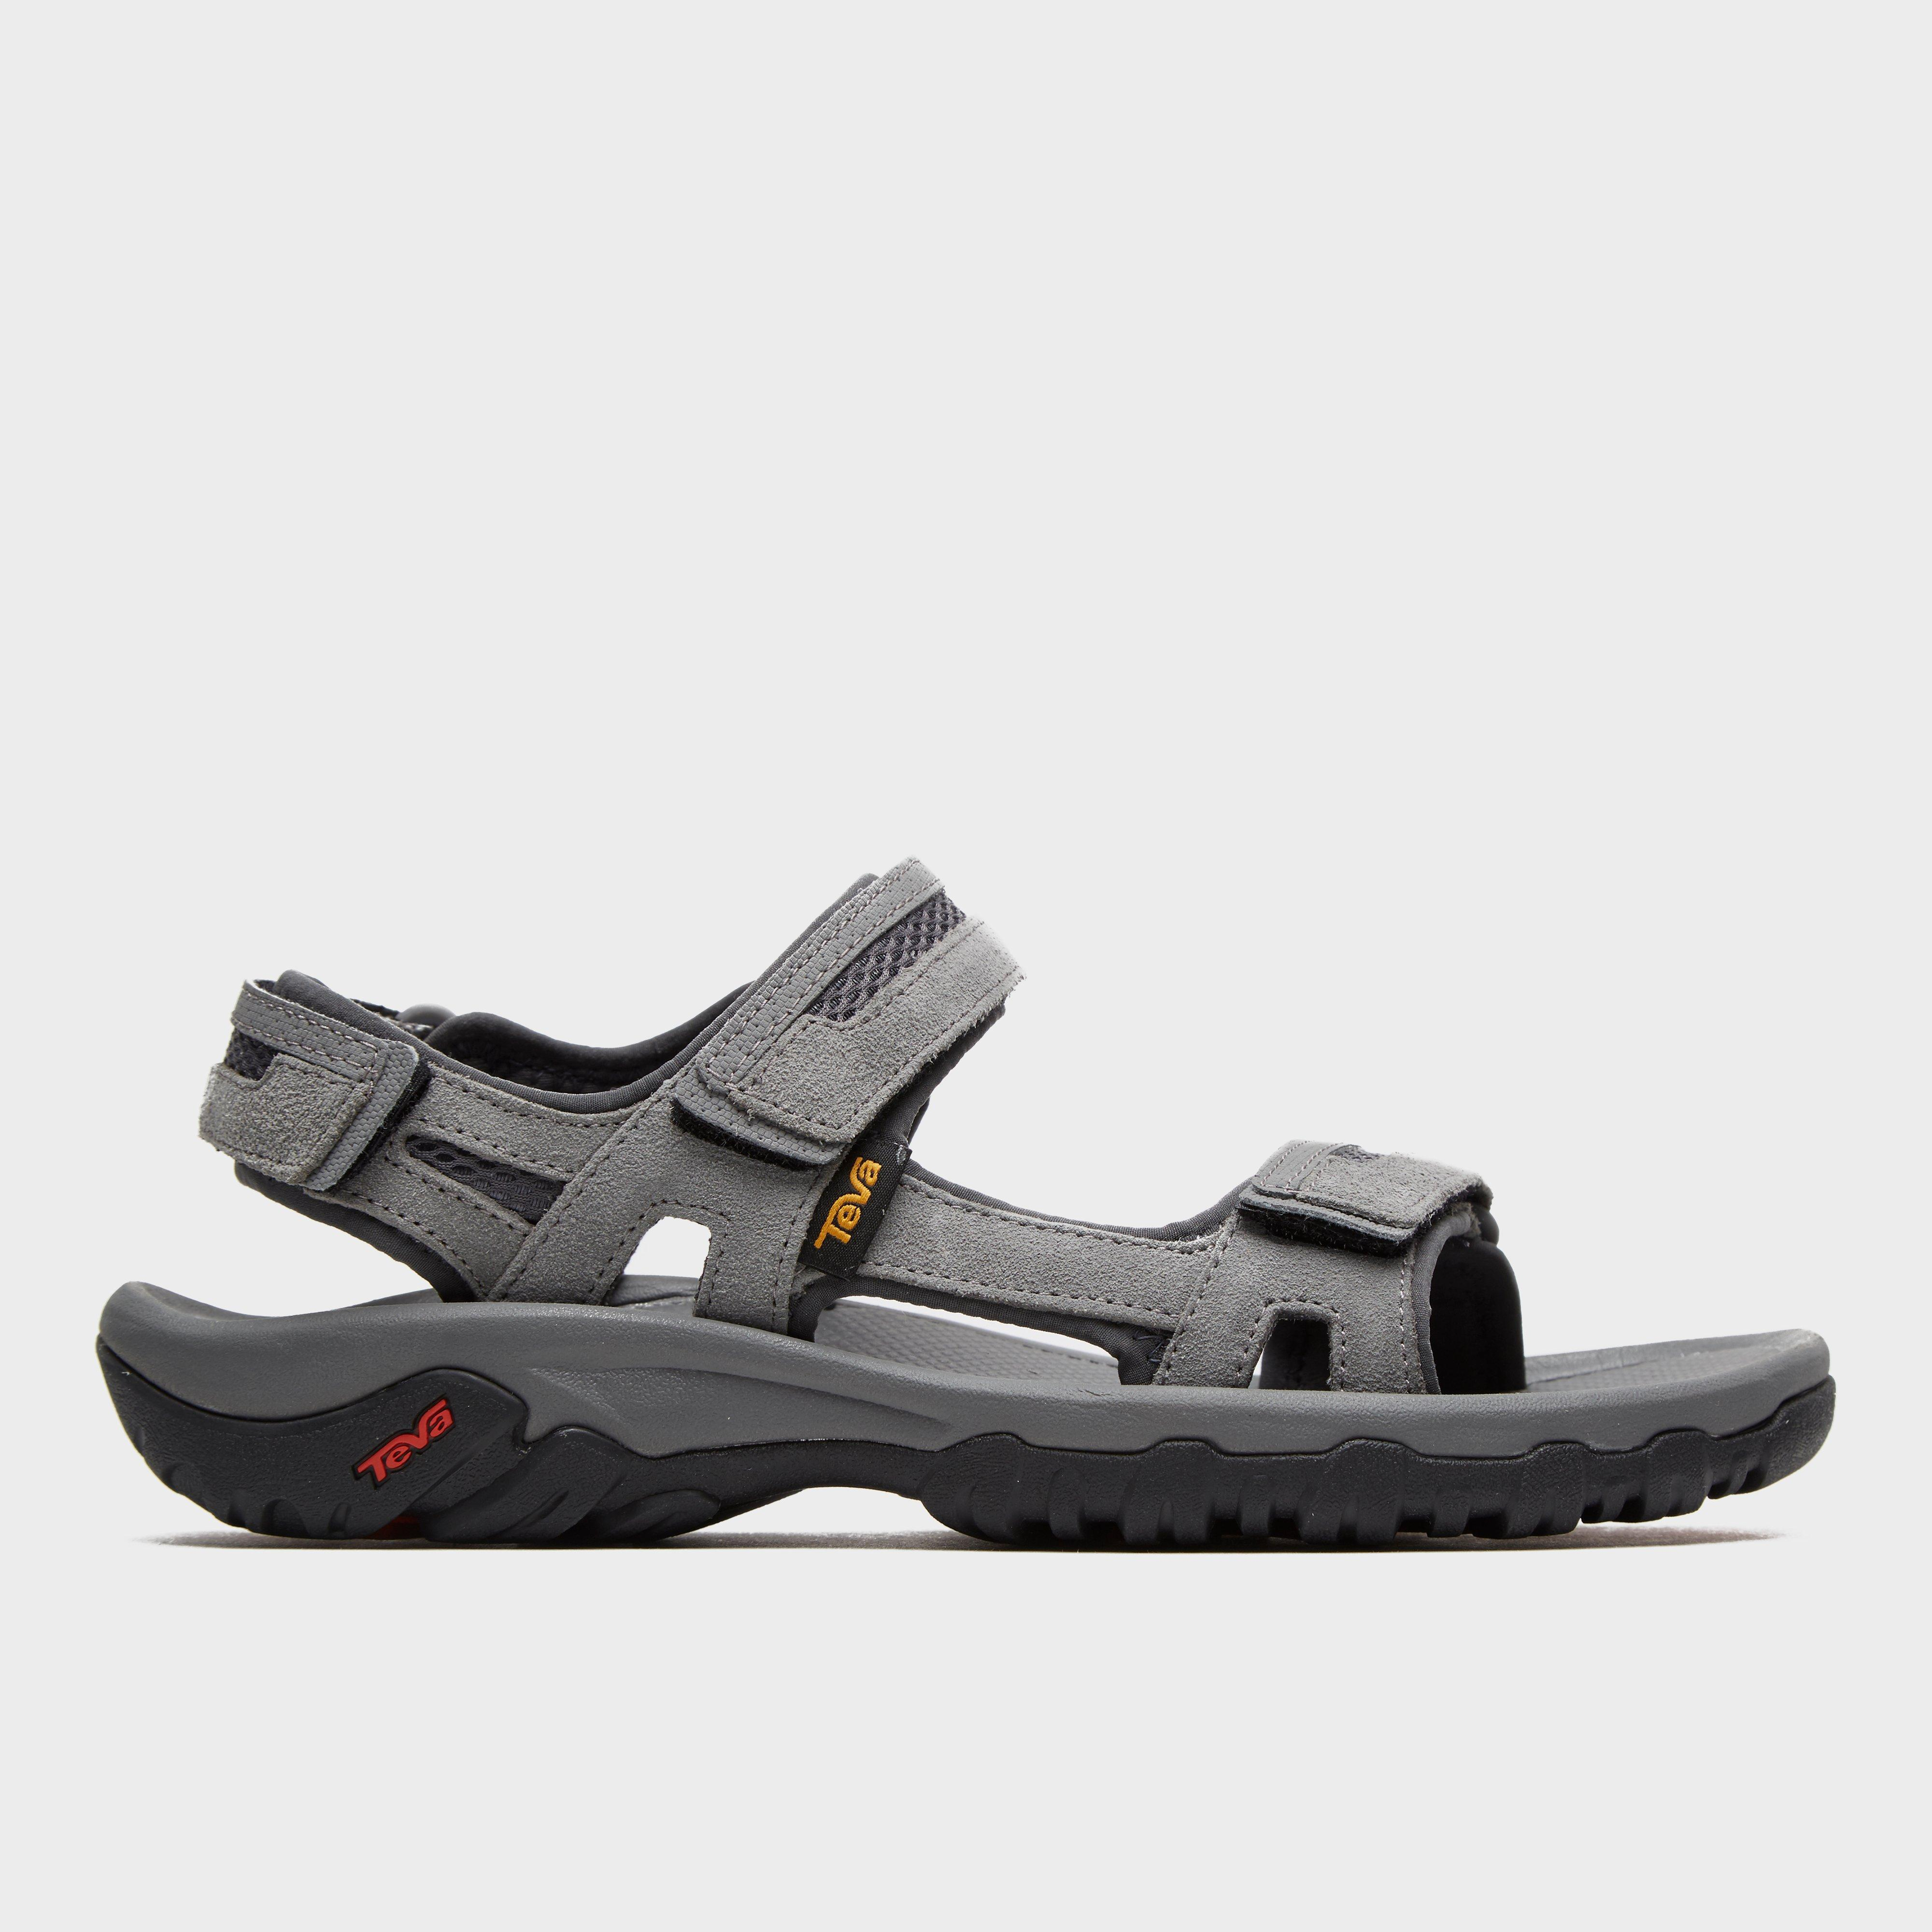 574a7bfa97db Details about New Teva Men s Hudson Sandal Outdoor Clothing